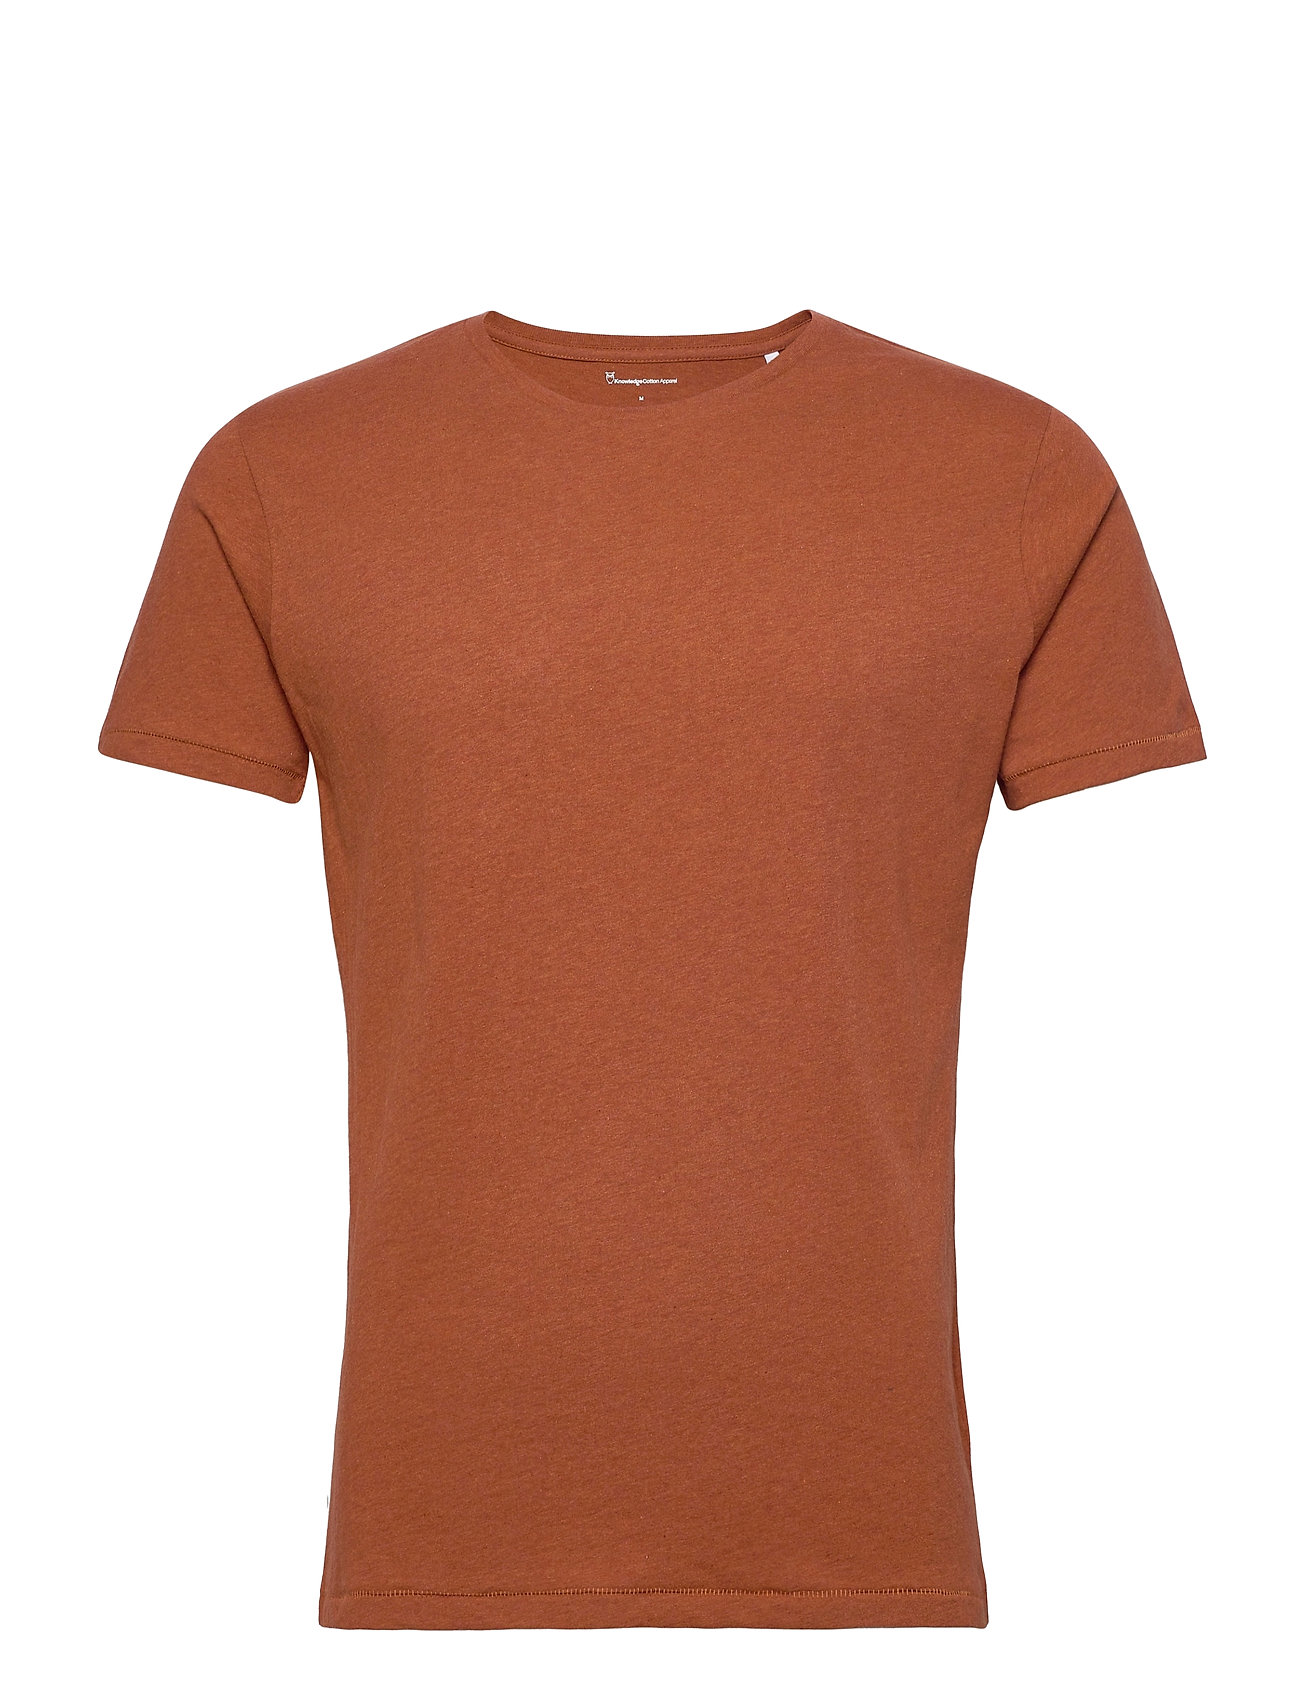 Knowledge Cotton Apparel ALDER basic tee - GOTS/Vegan - RUST MELANGE